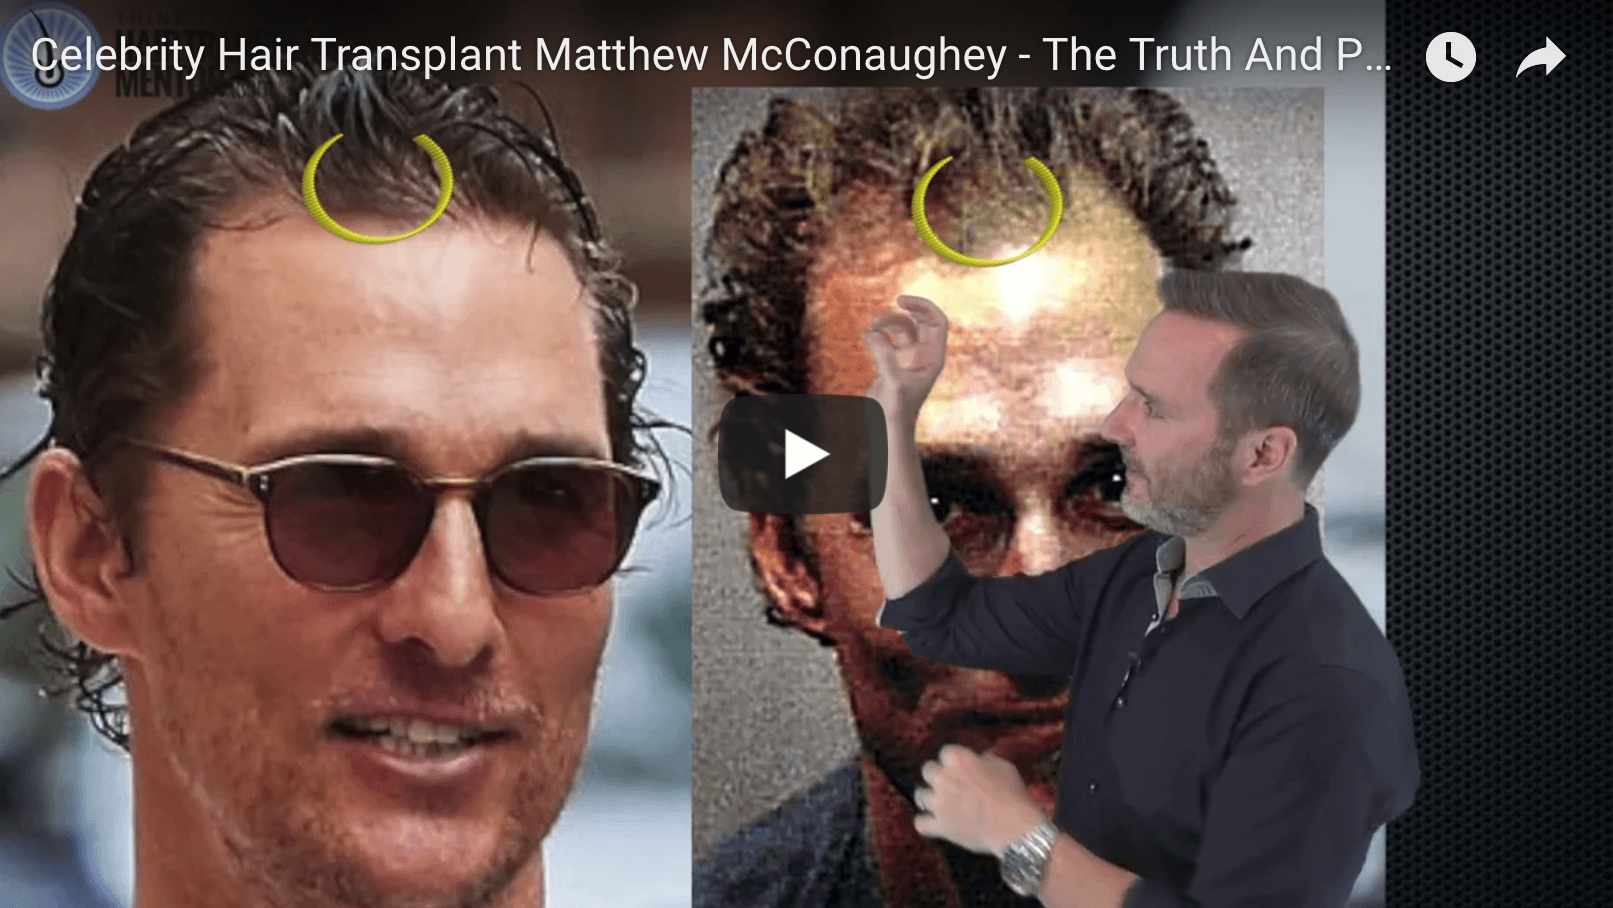 Matthew Mcconaughey Hair Transplant The Real Truth